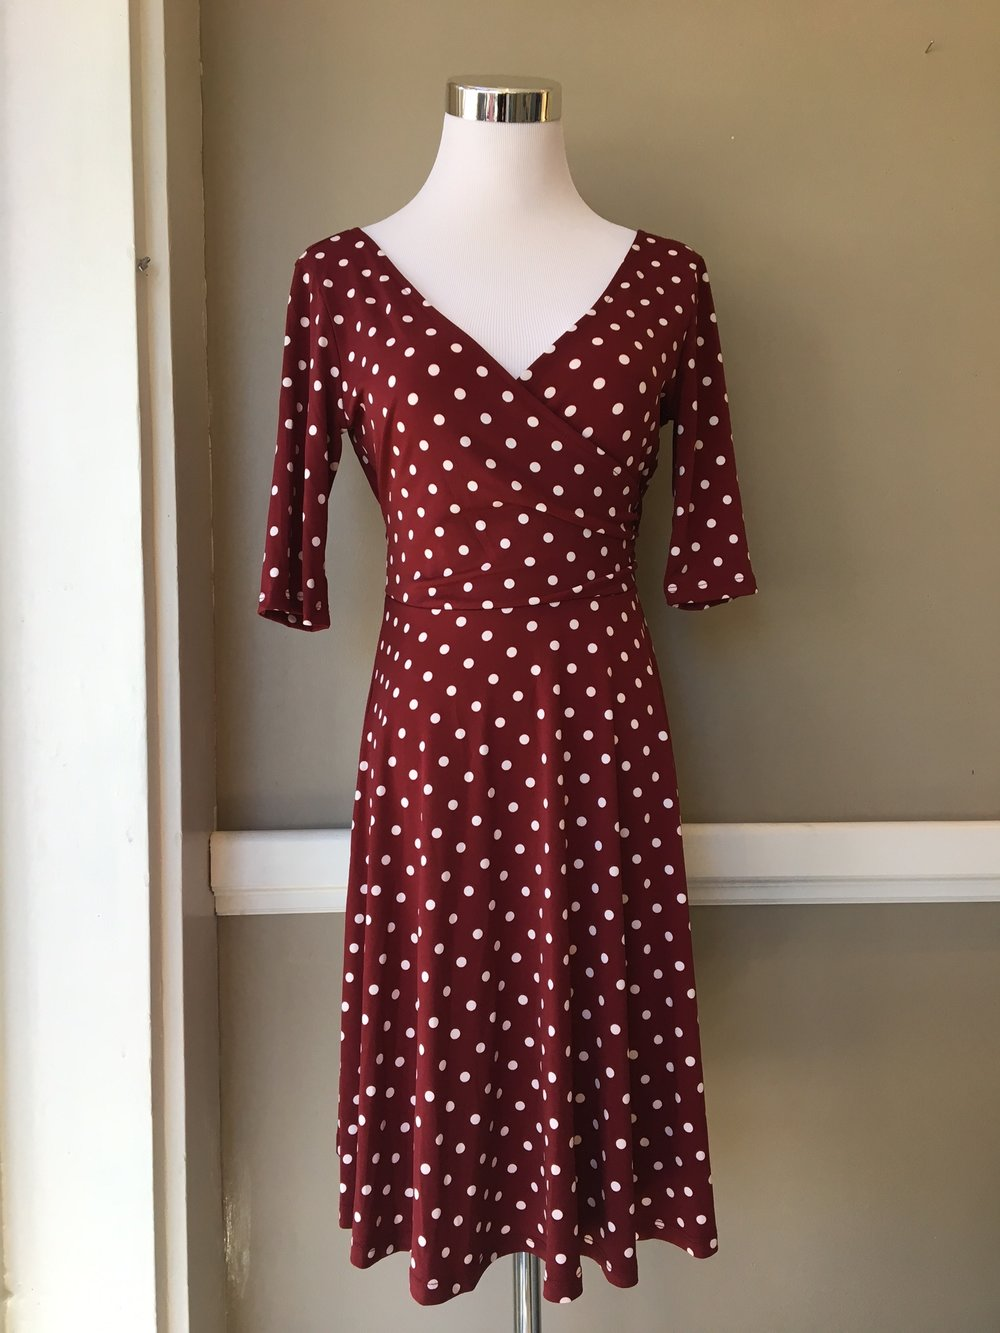 Polka Dot Dress ($42)